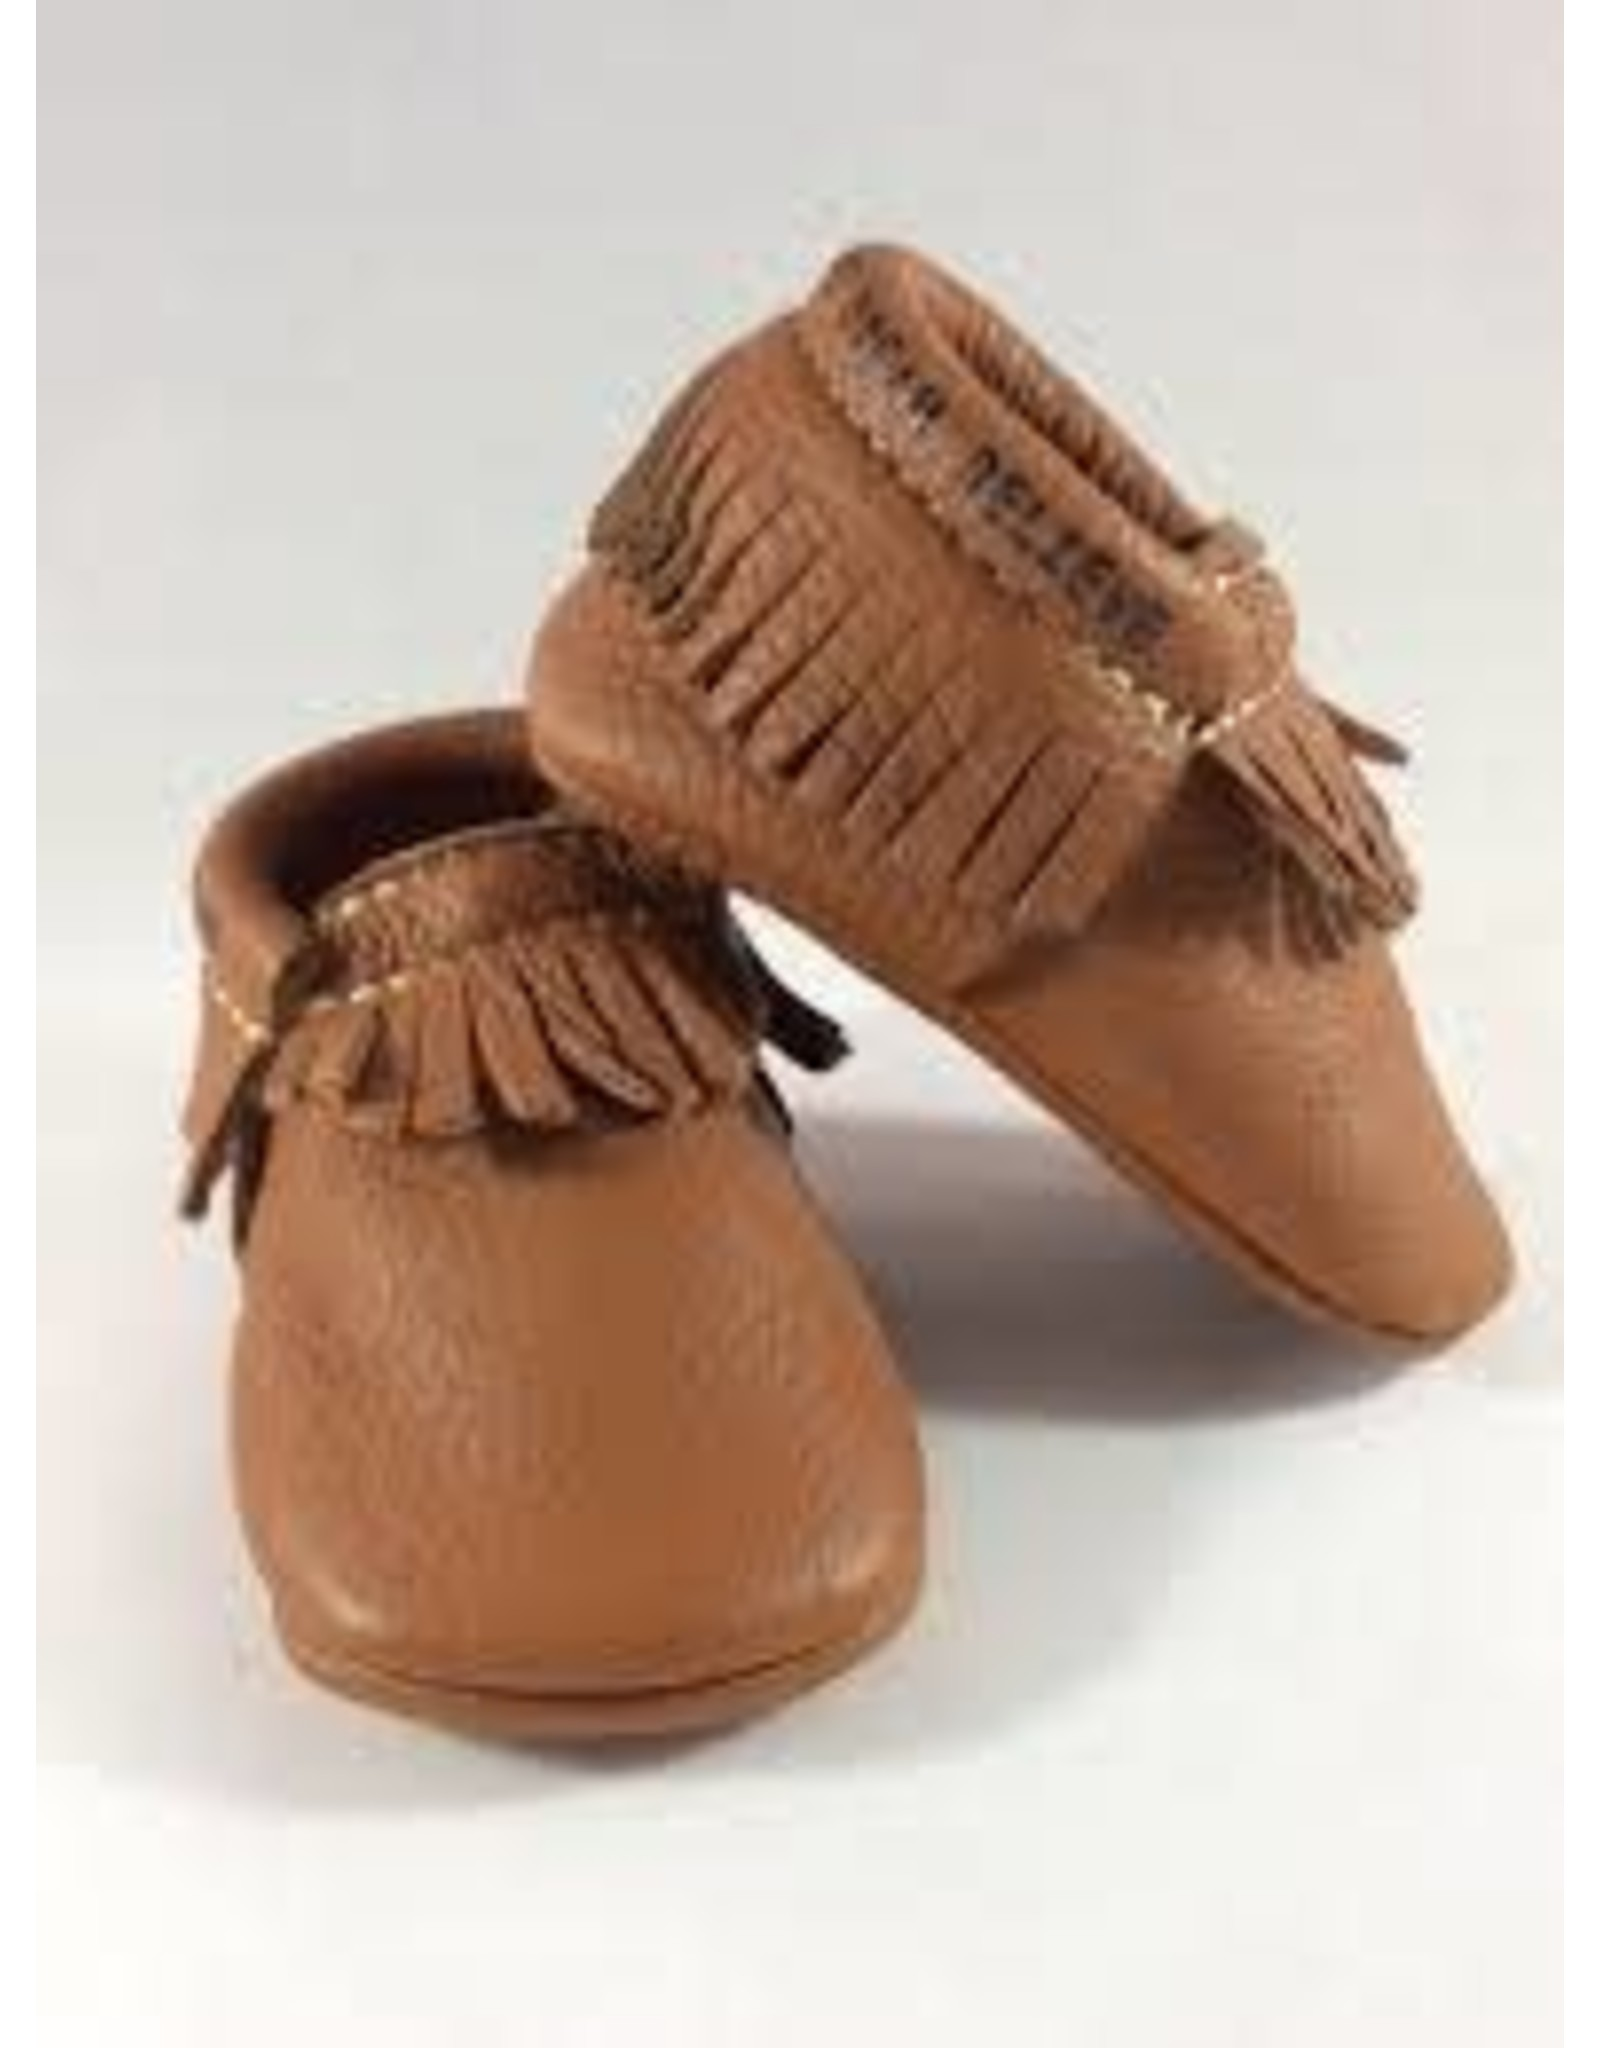 Mud Pie Leather Moccasins Brown 0-6M